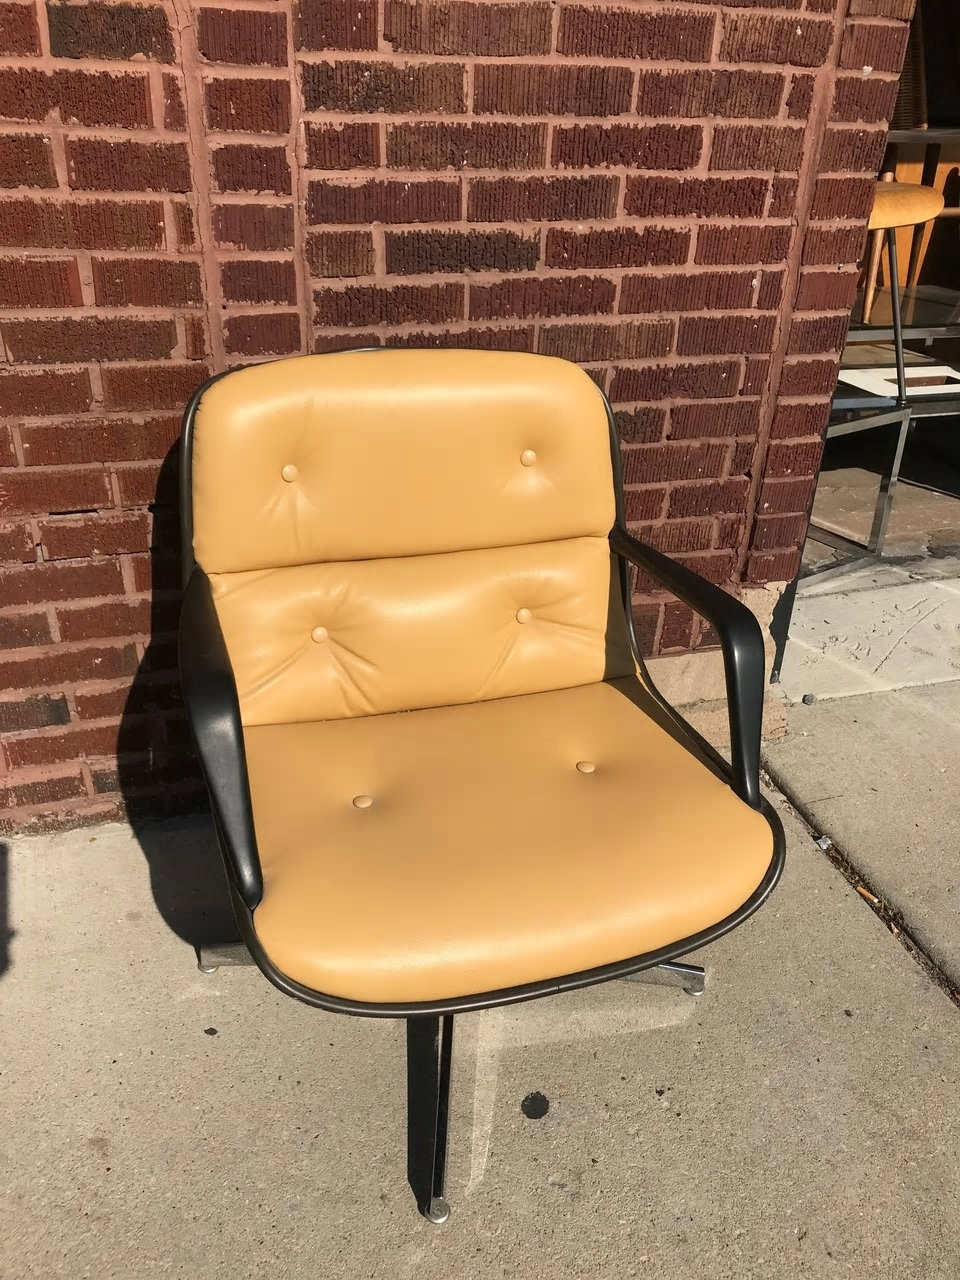 Vintage Mid Century Modern Steelcase Tan Leather Swivel Office Chair Newly Upholstered